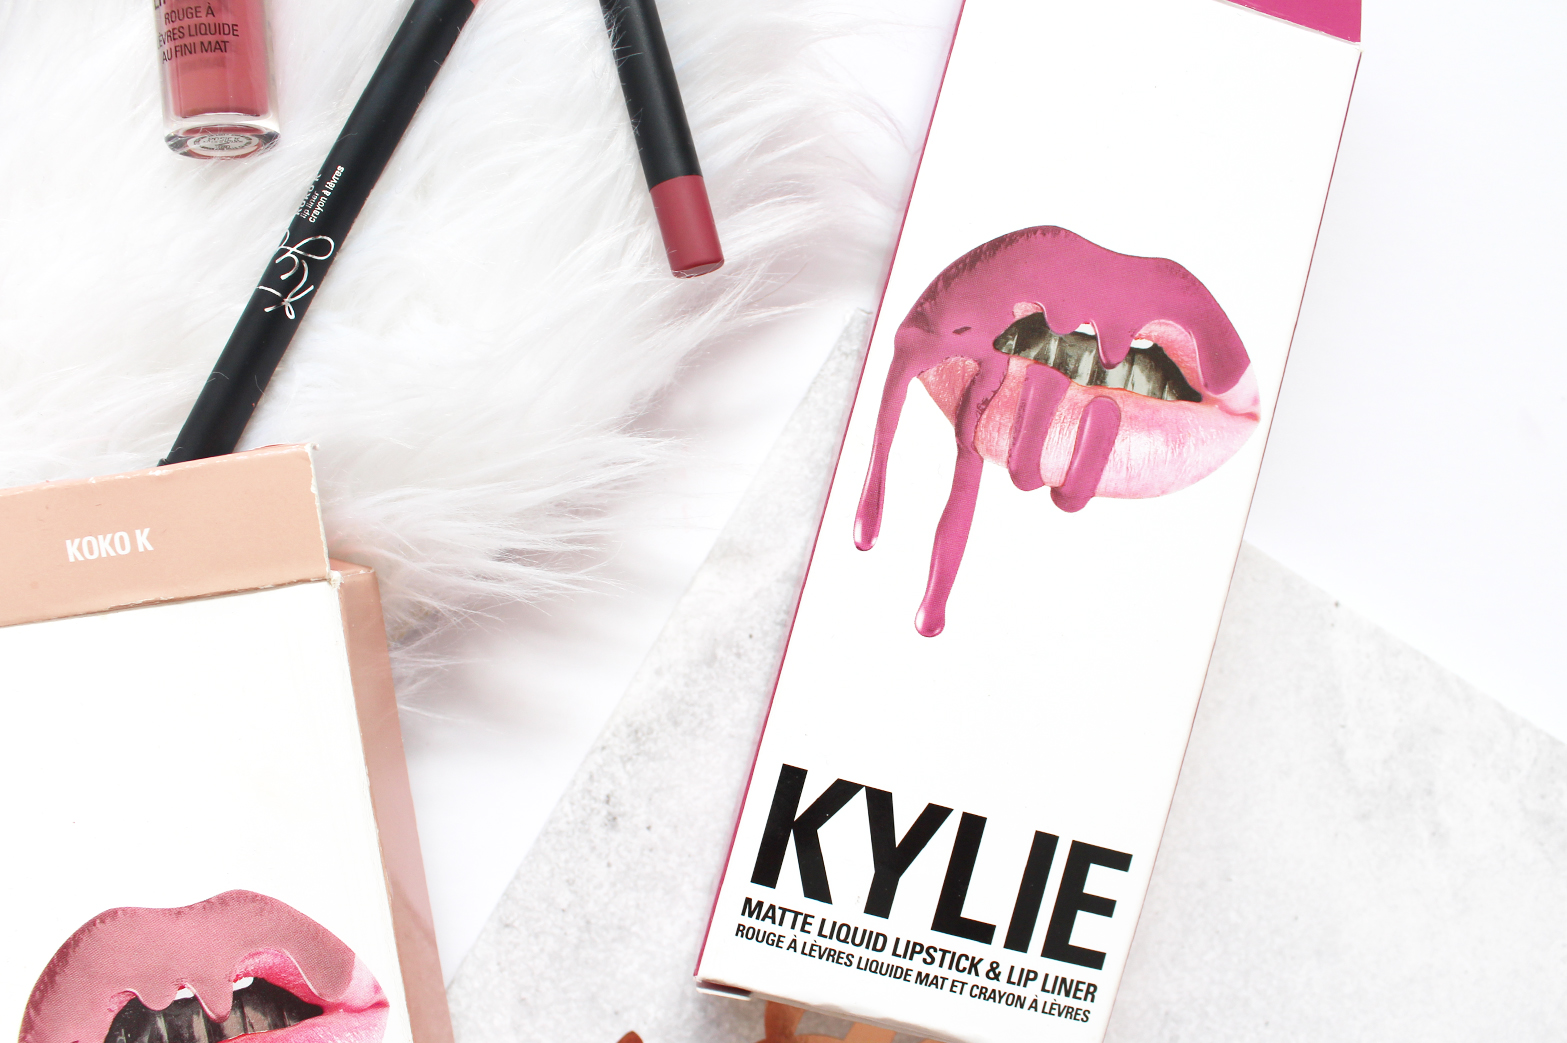 KYLIE COSMETICS | Lip Kits in Koko K + Posie K - Review + Swatches - CassandraMyee